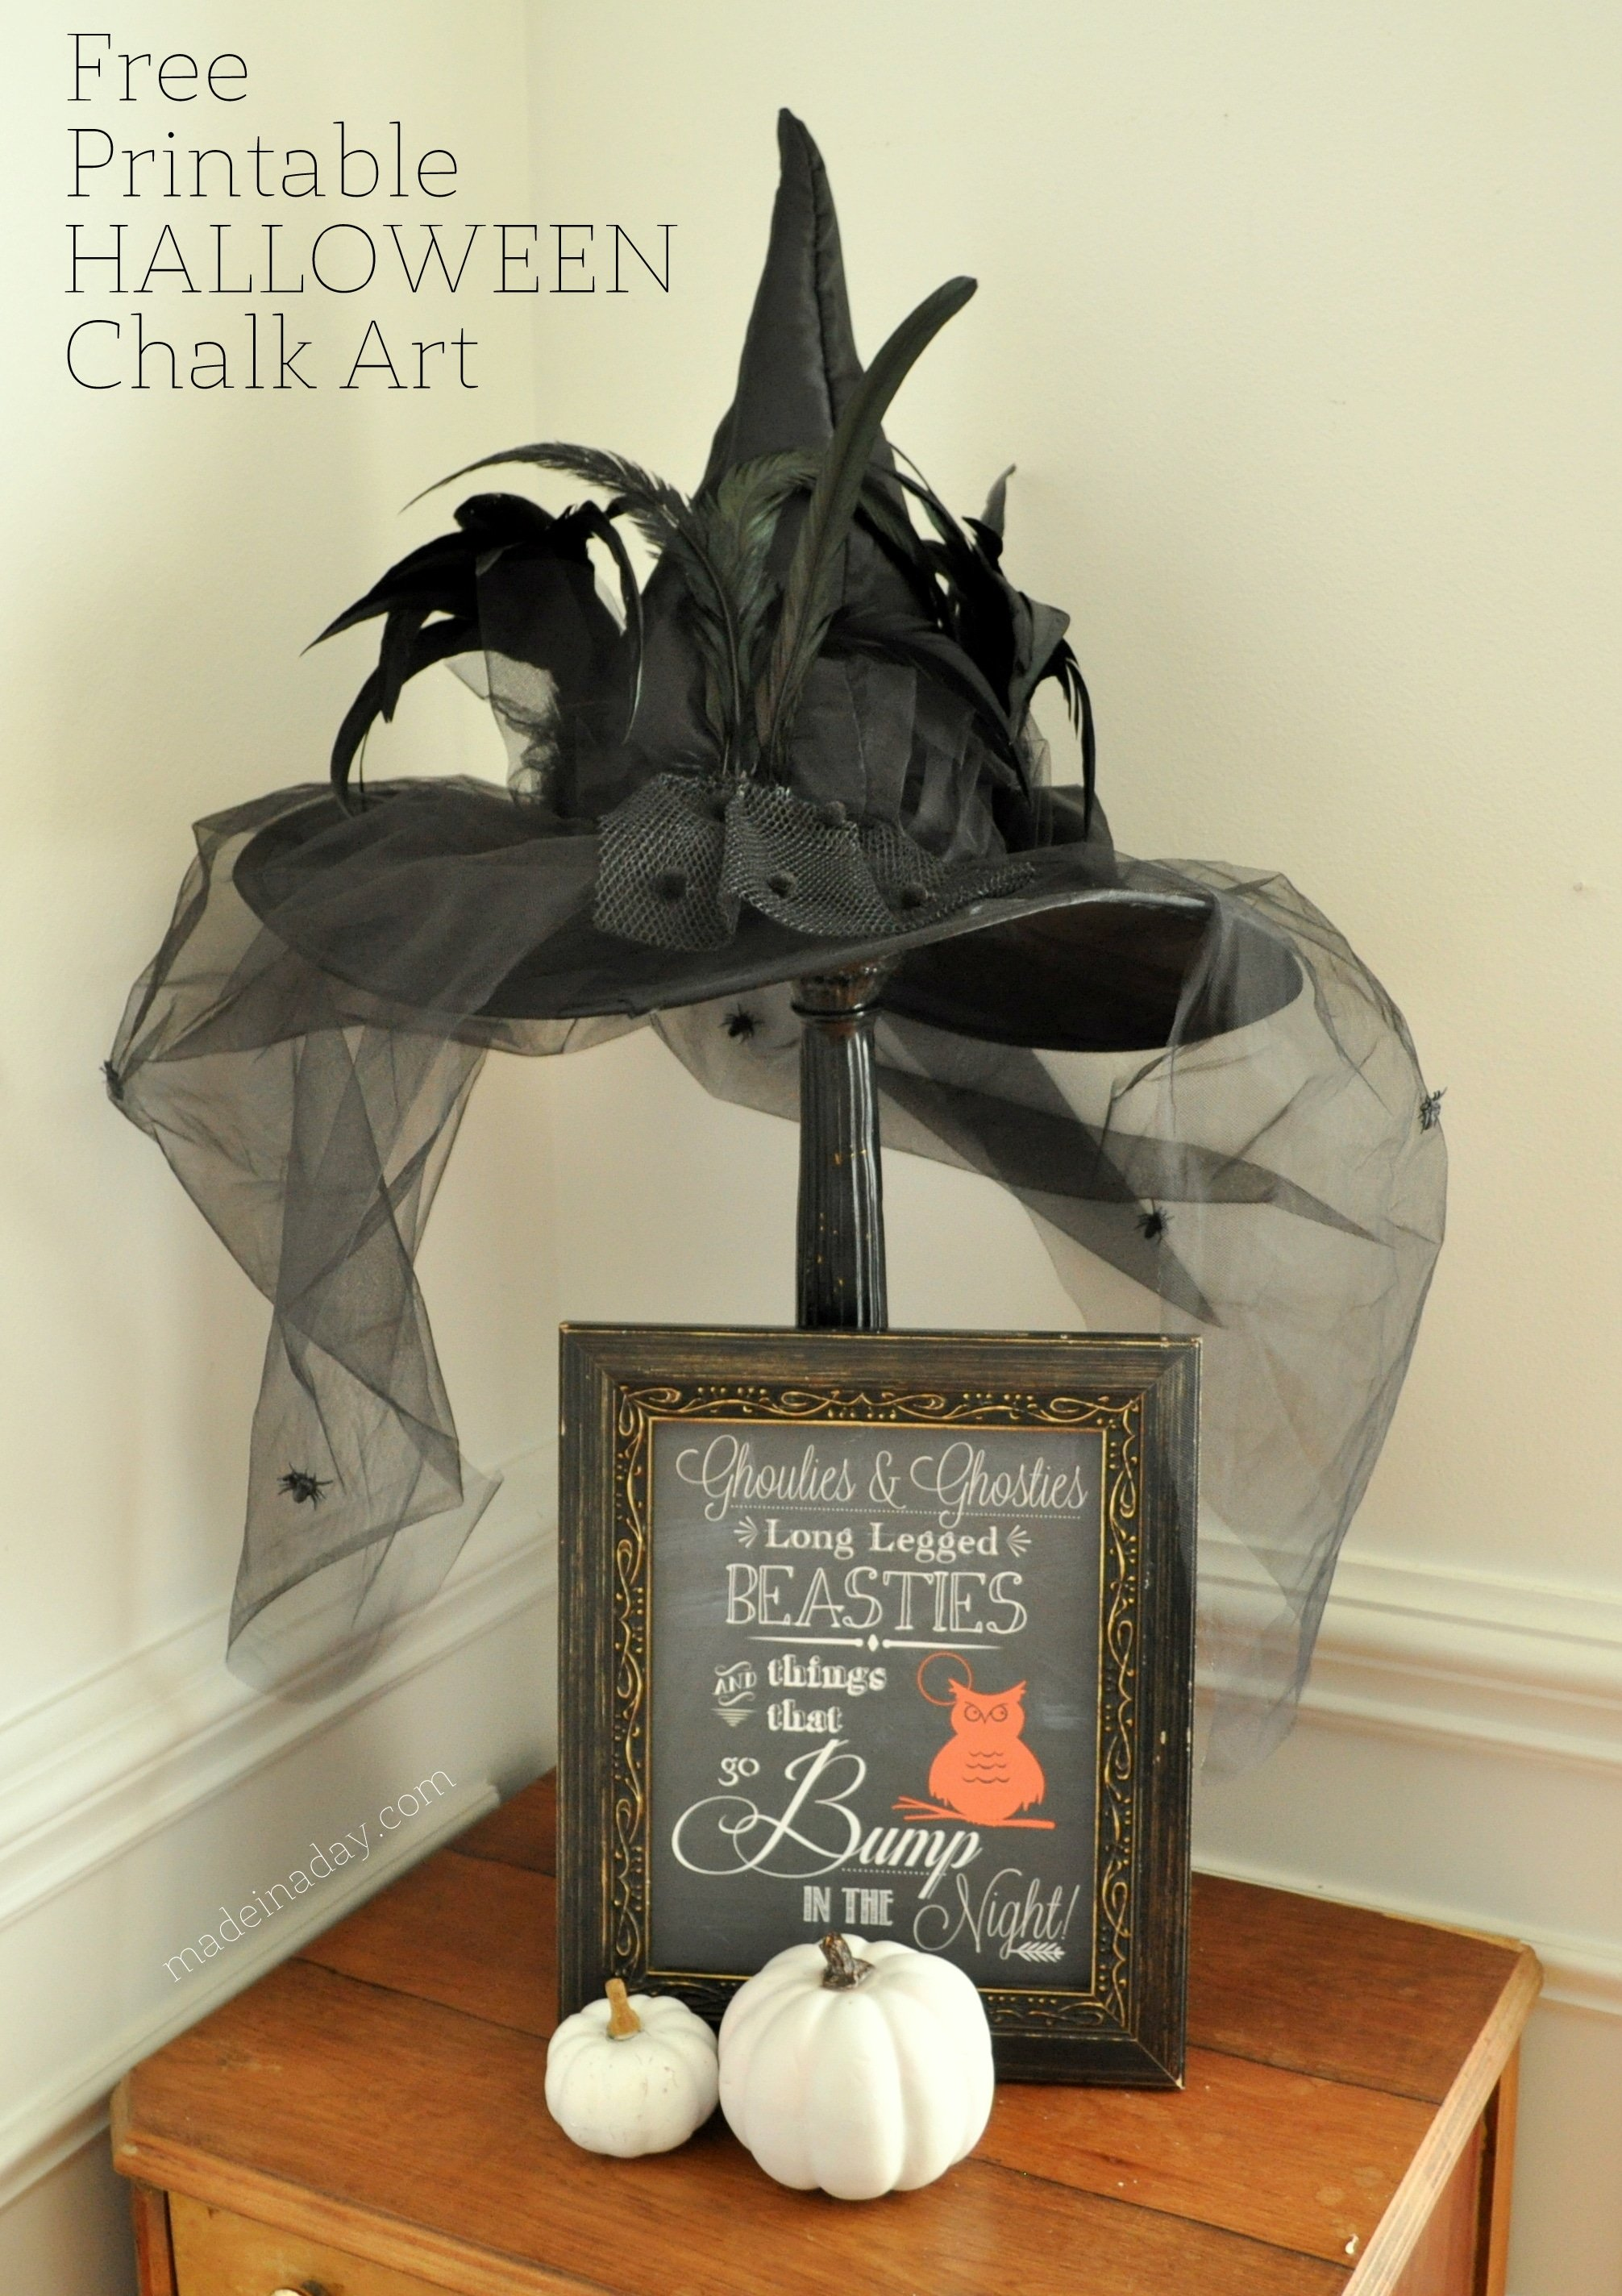 Free Printable Halloween Chalk Art